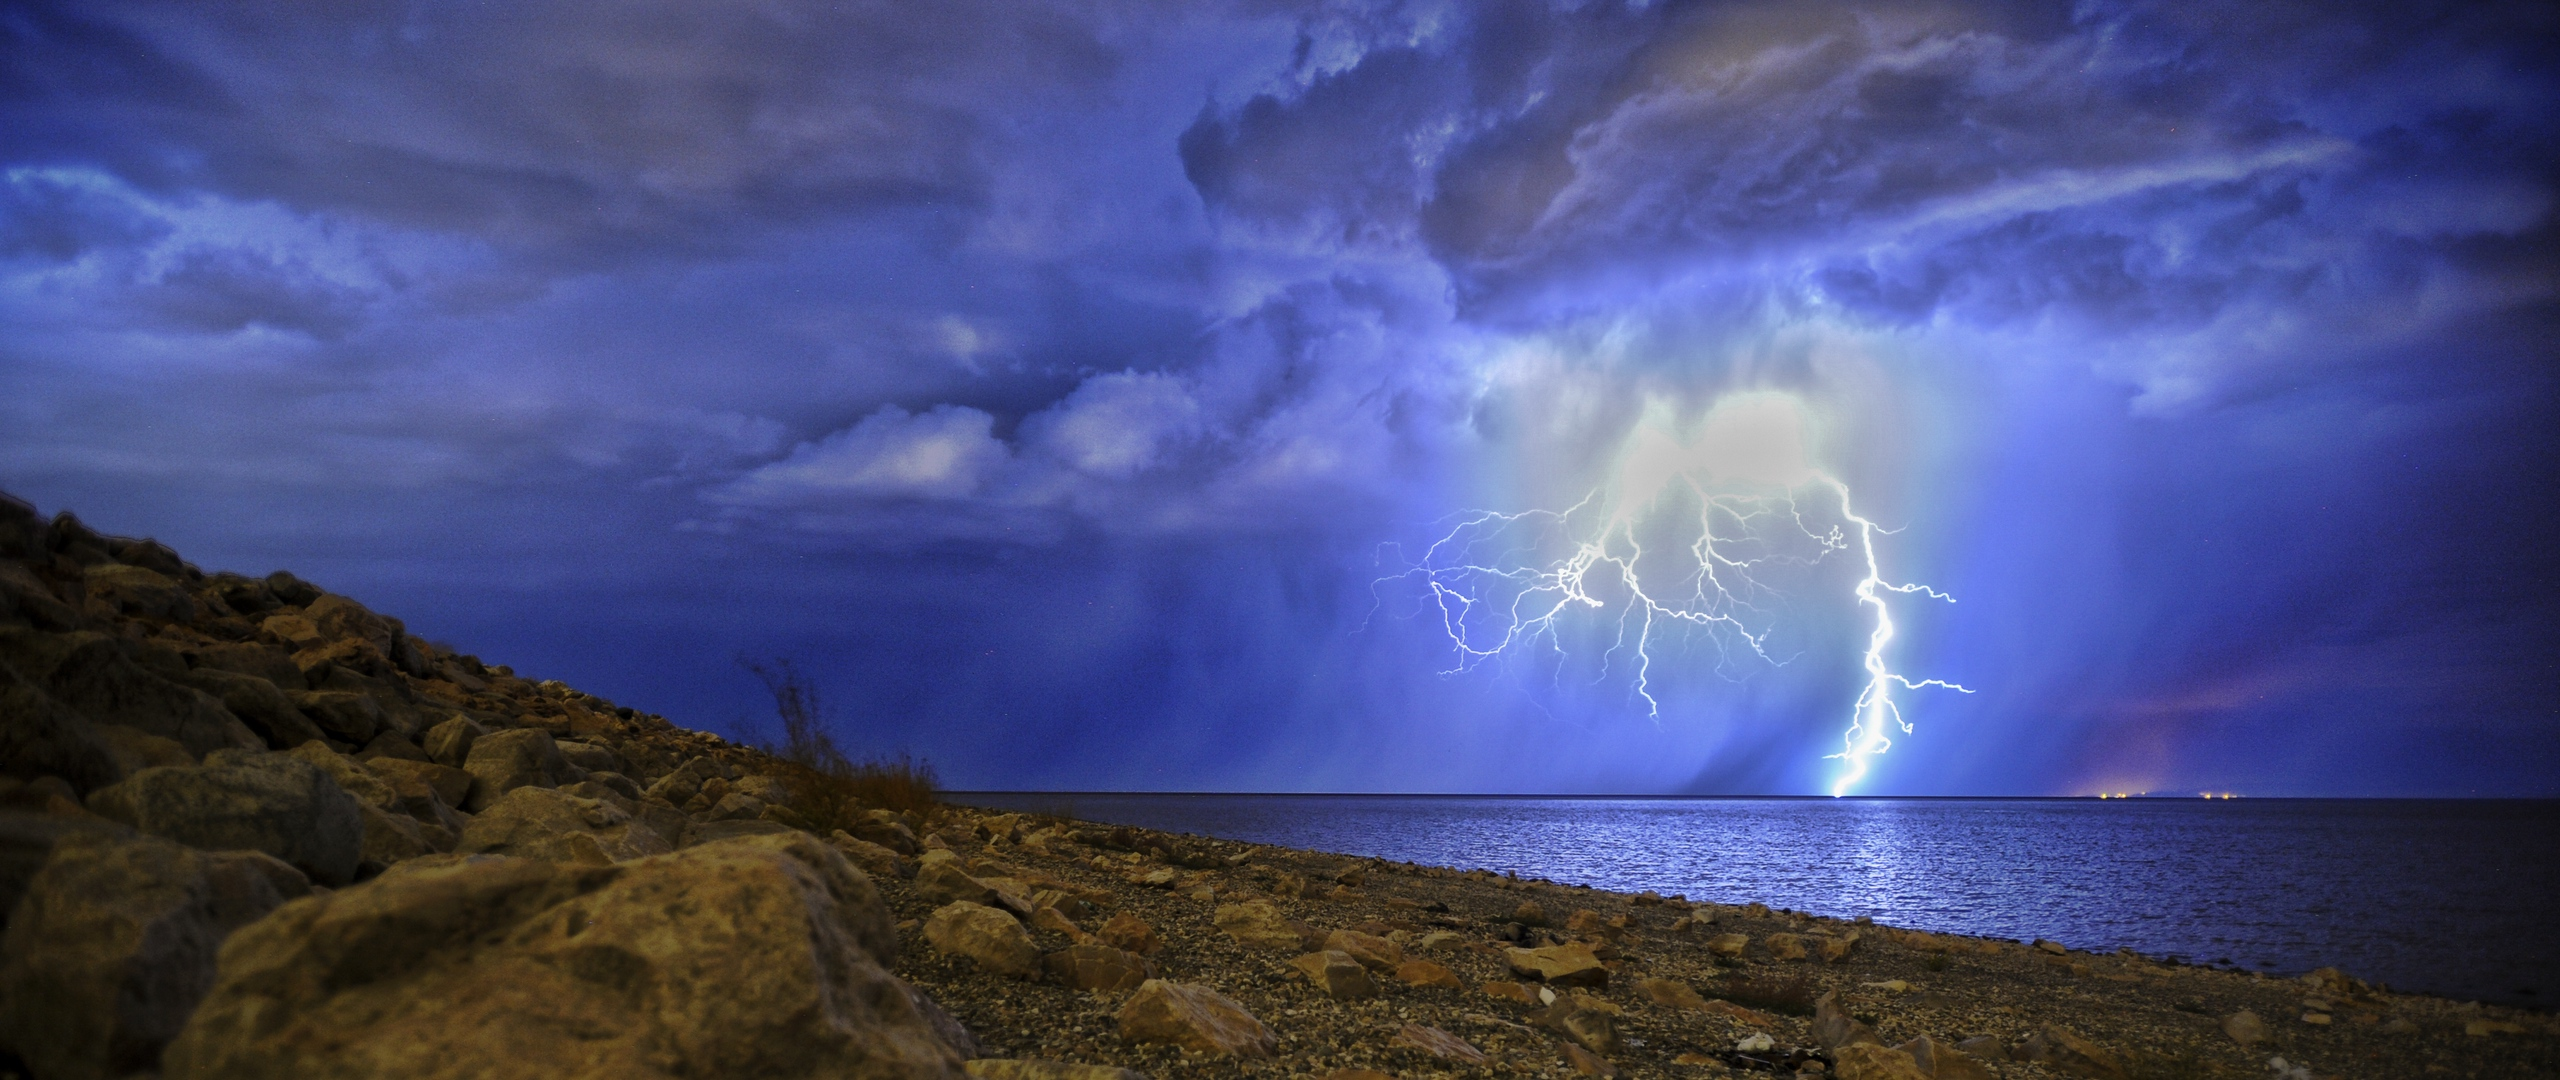 Download wallpapers 2560x1080 lightning, storm, lake, overcast, shore